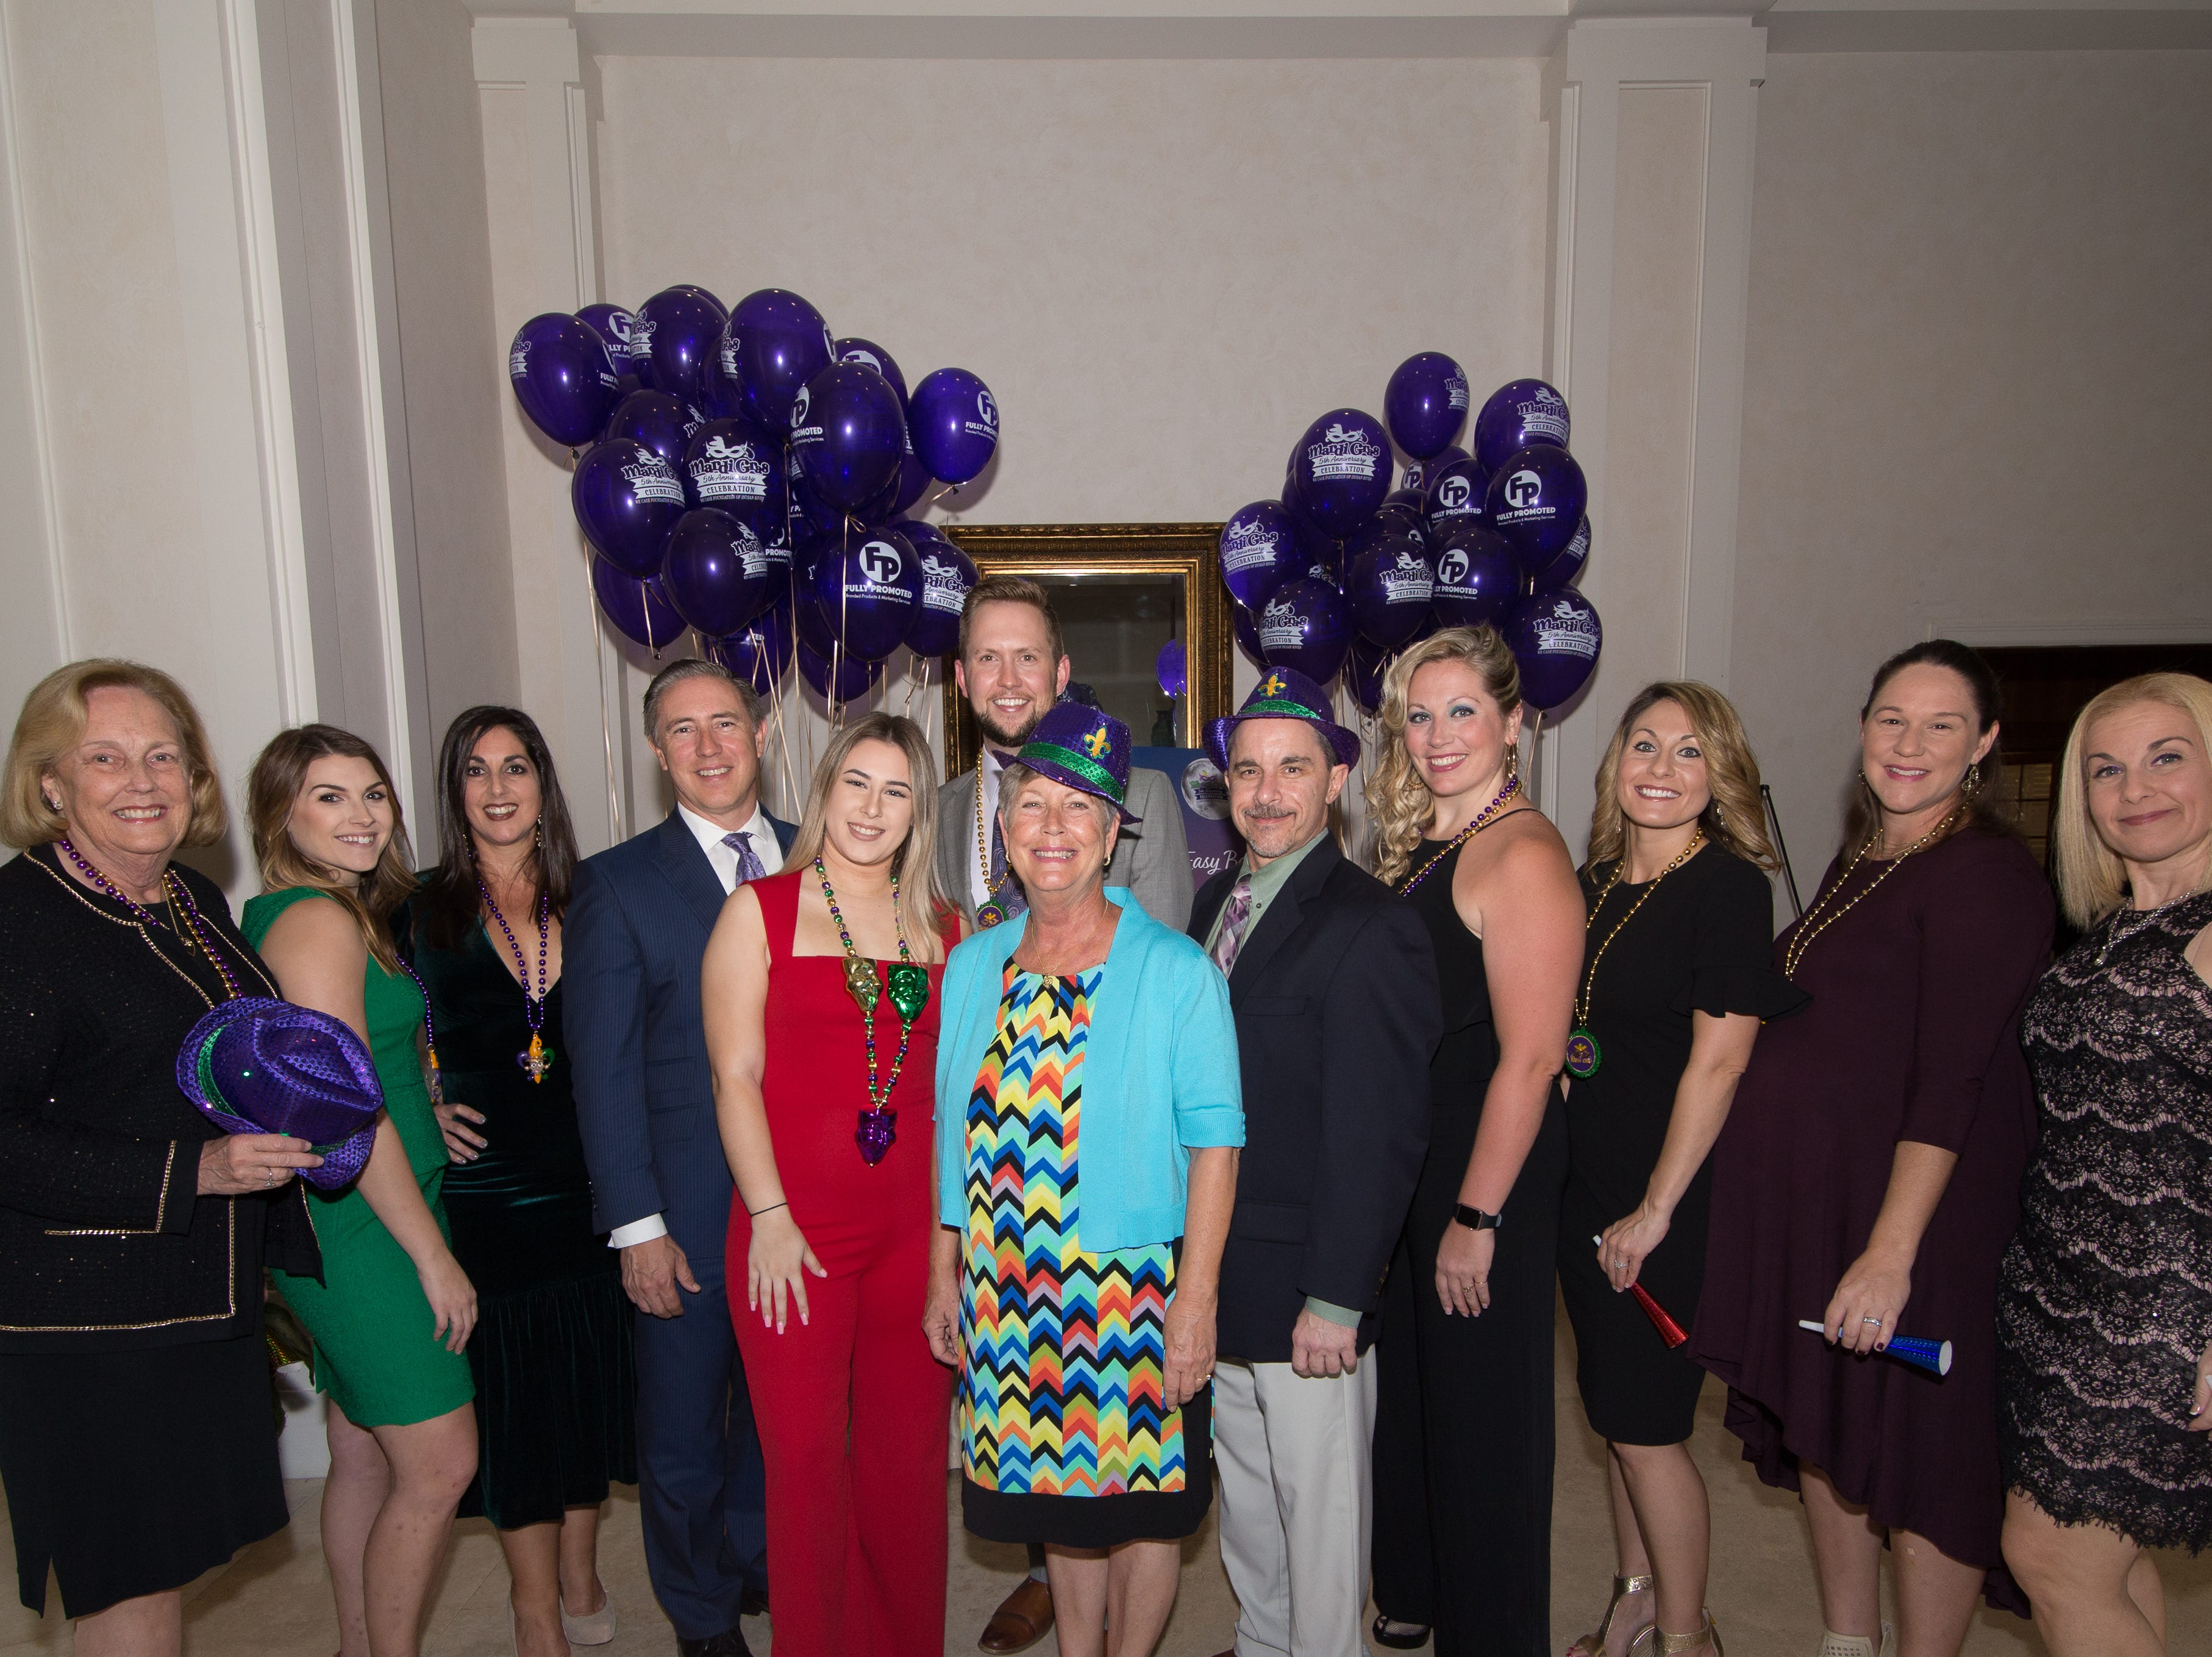 The 2019 Mardi Gras Krewe spent months planning this year's celebration. Pictured are, from left, Diana Start, Caitlin Rice, Hala Laviolette, Jay Rinchack, Lyndsay Marone, Ben Earman, Shelley Stuven, Brian Hartman, Jennifer Courtney, Stephanie Nelson and Maria Zambigadis.